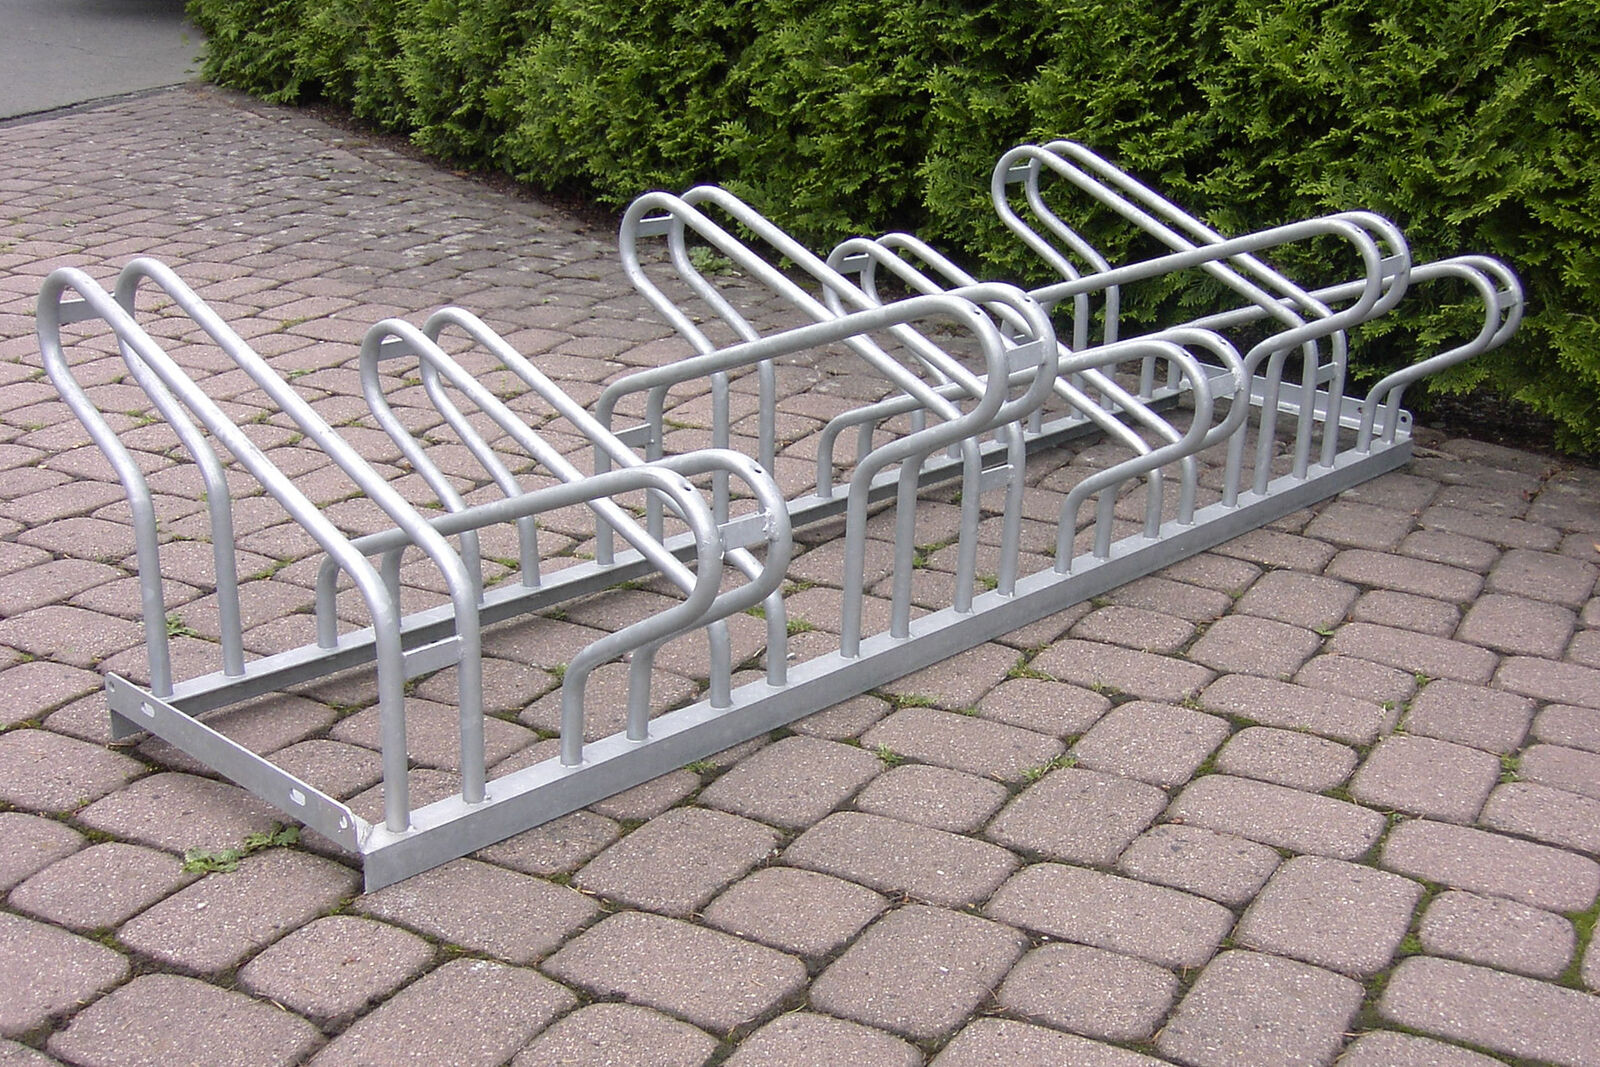 Fahrrad bügelparker 1160 1750mm Double-Sided   Fahrrad Stand   6 pitches